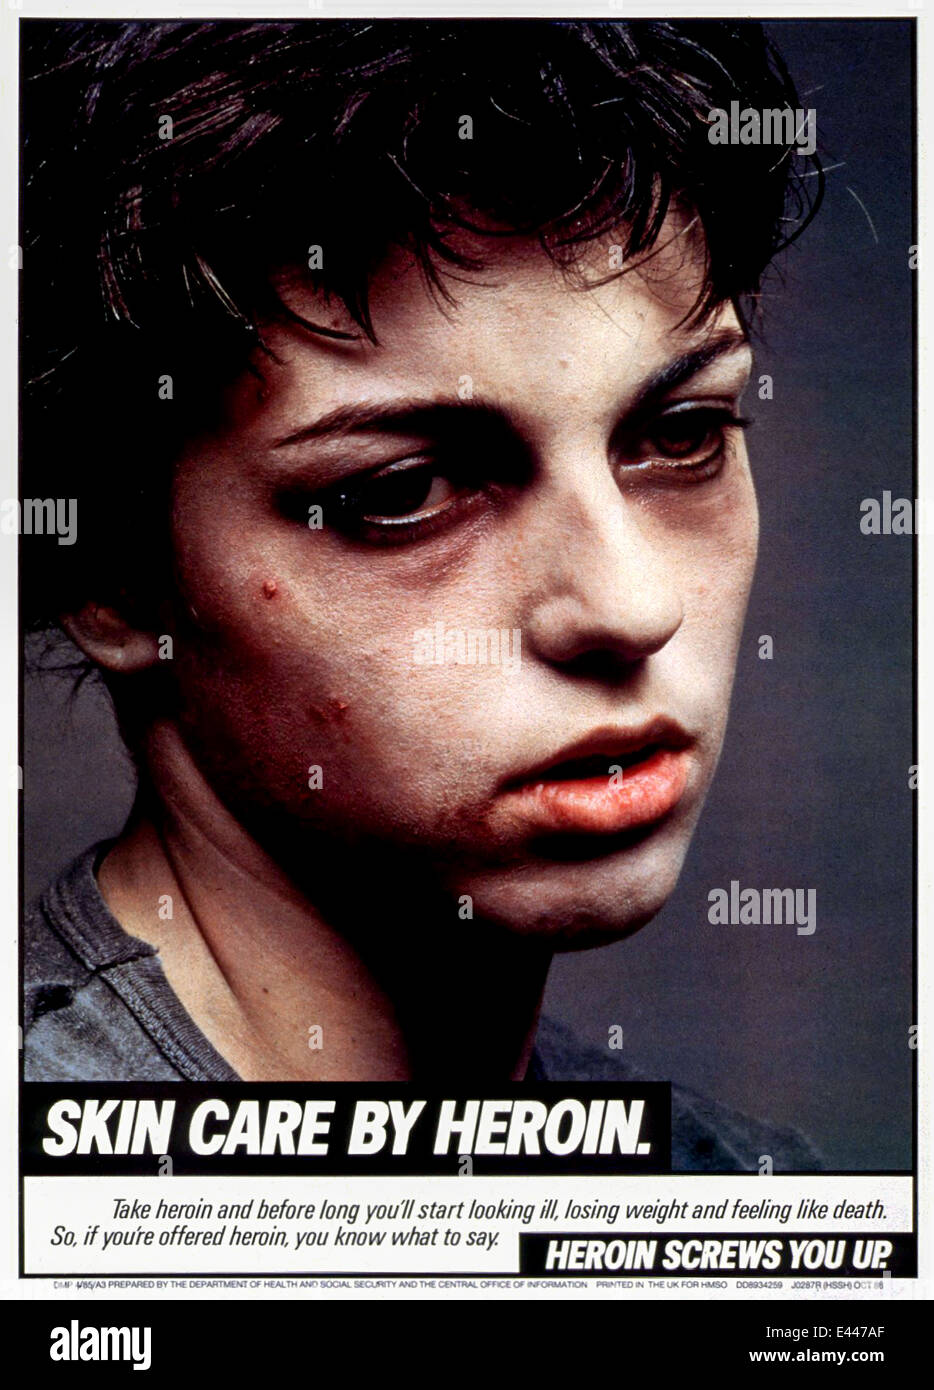 'Skin Care by Heroin.' Part of the 'Heroin Screws You Up' drug awareness campaign. 1986 poster featuring - Stock Image